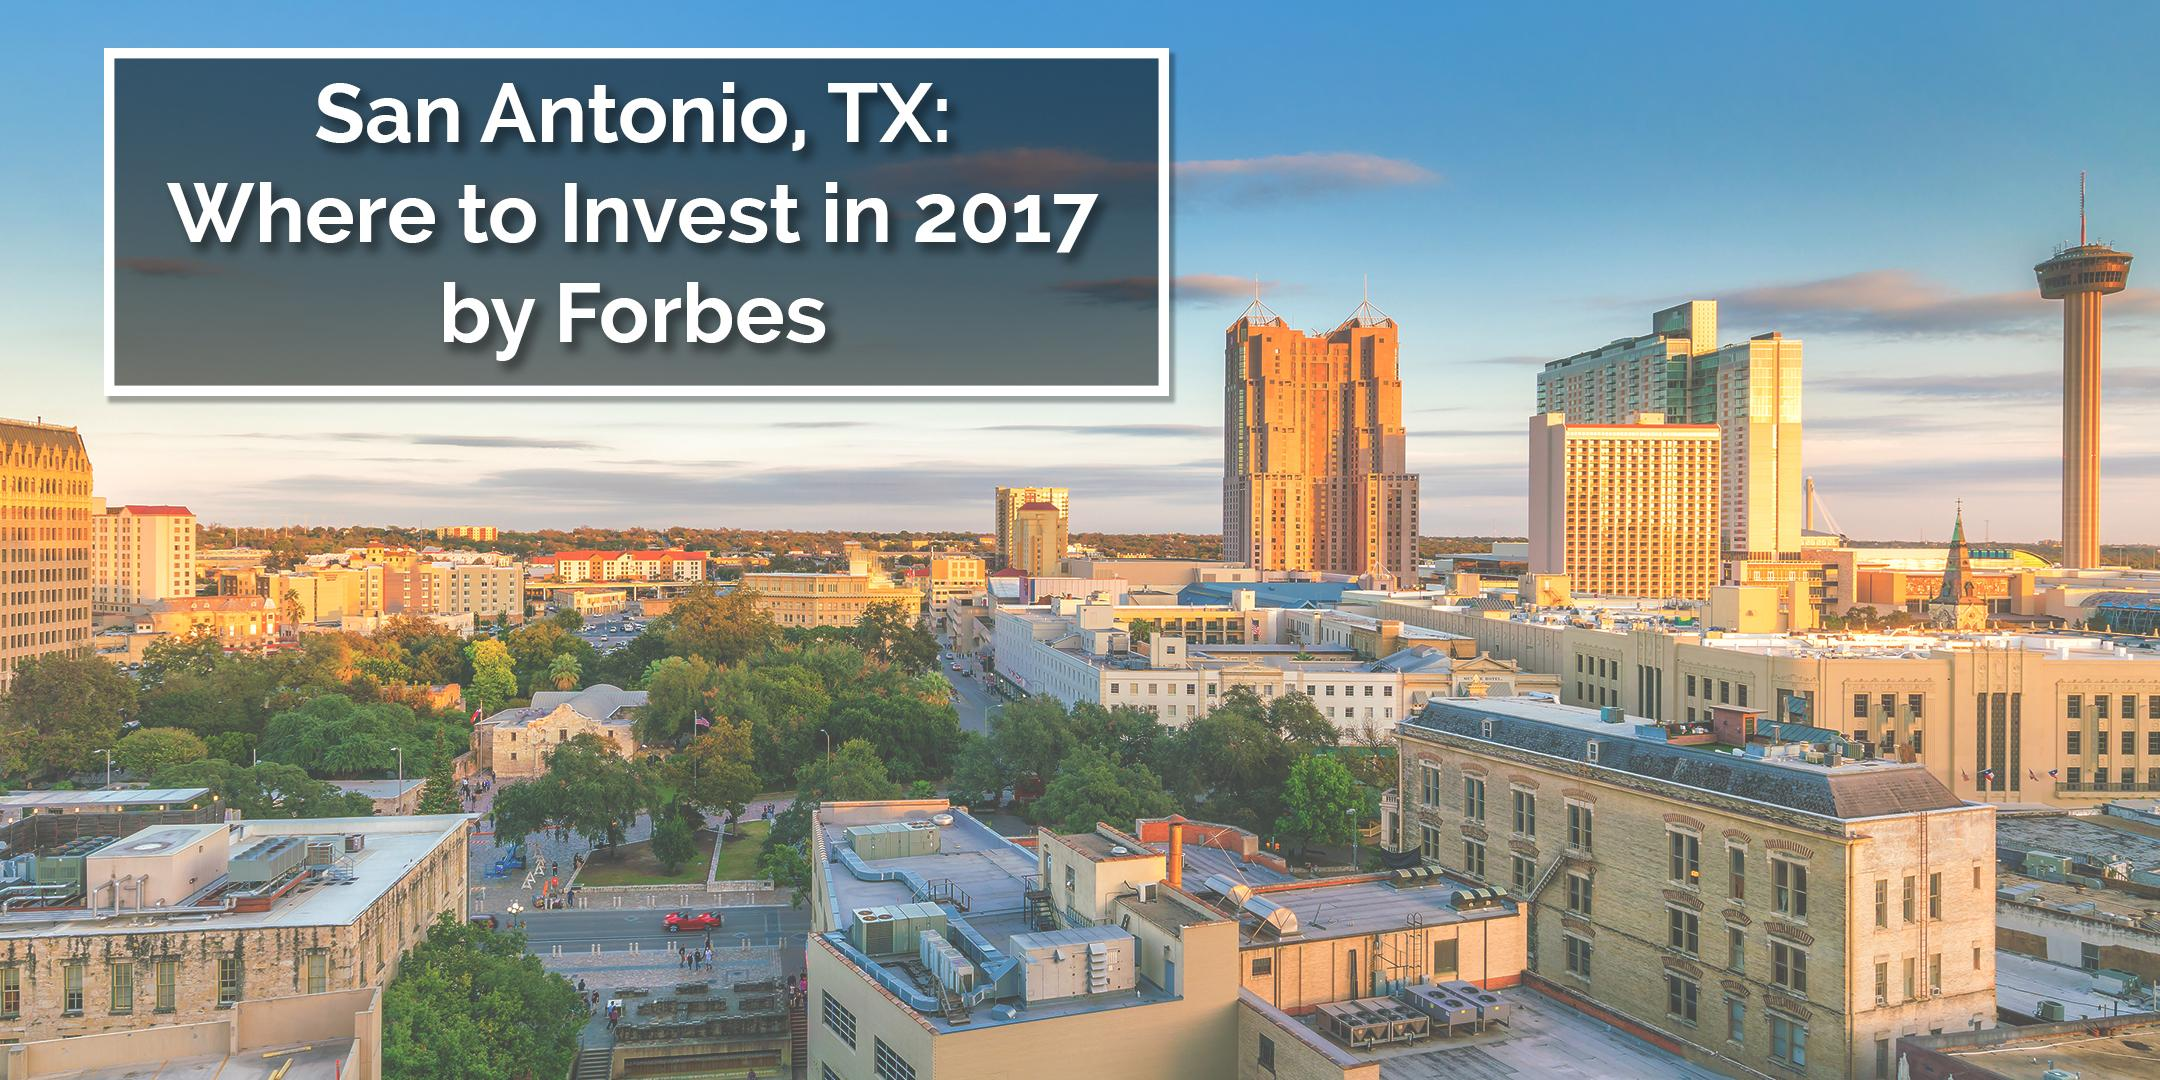 San Antonio, TX: Where to Invest in 2017 by Forbes